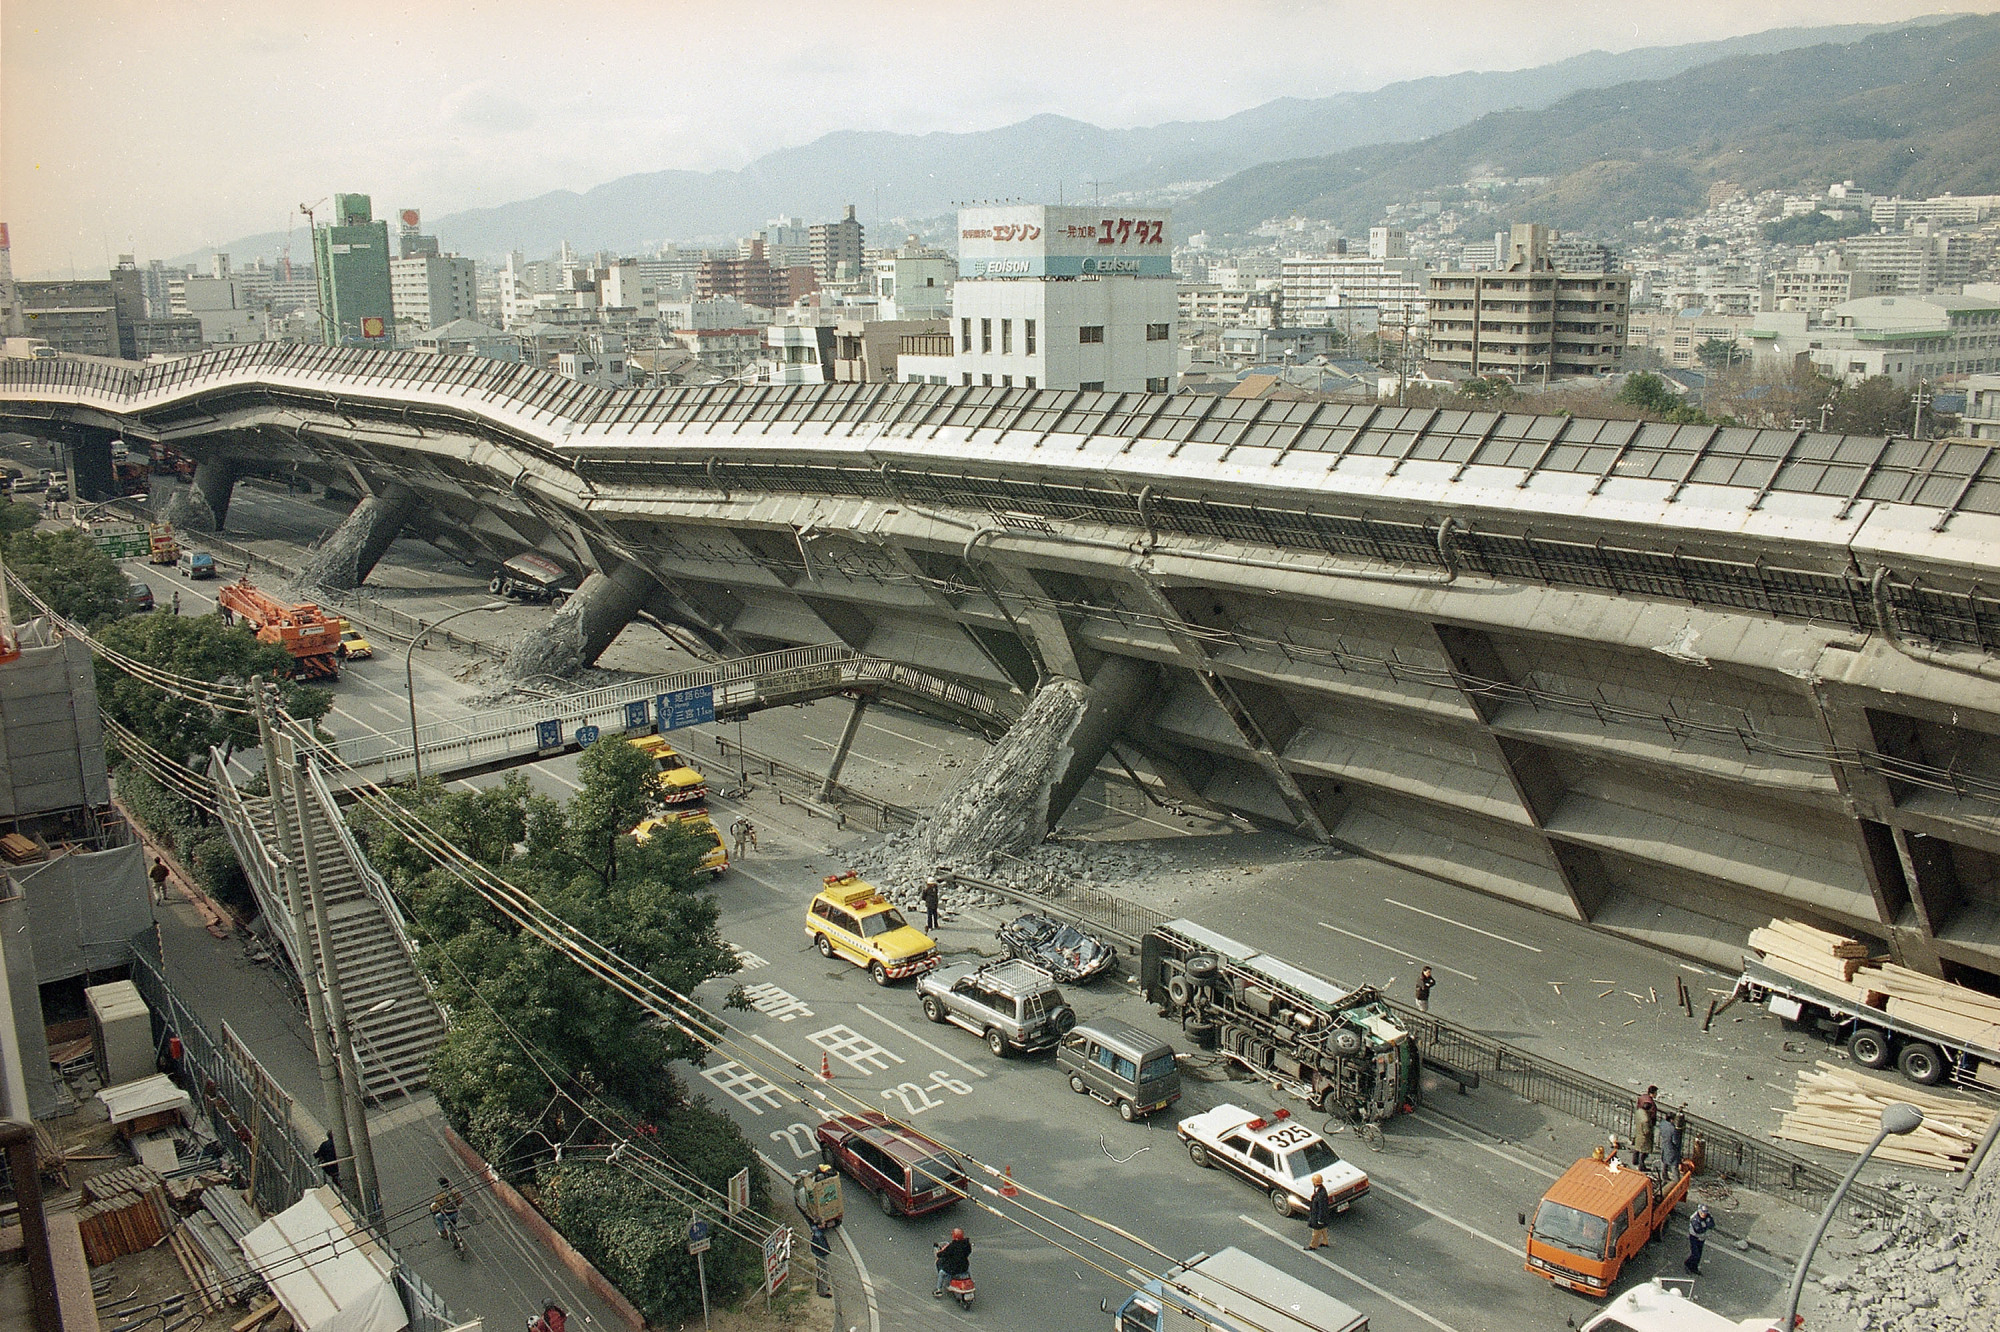 The Kobe-Osaka highway lies toppled on its side in eastern Kobe in the aftermath of the Great Hanshin Earthquake of Jan. 17, 1995. | ASSOCIATED PRESS